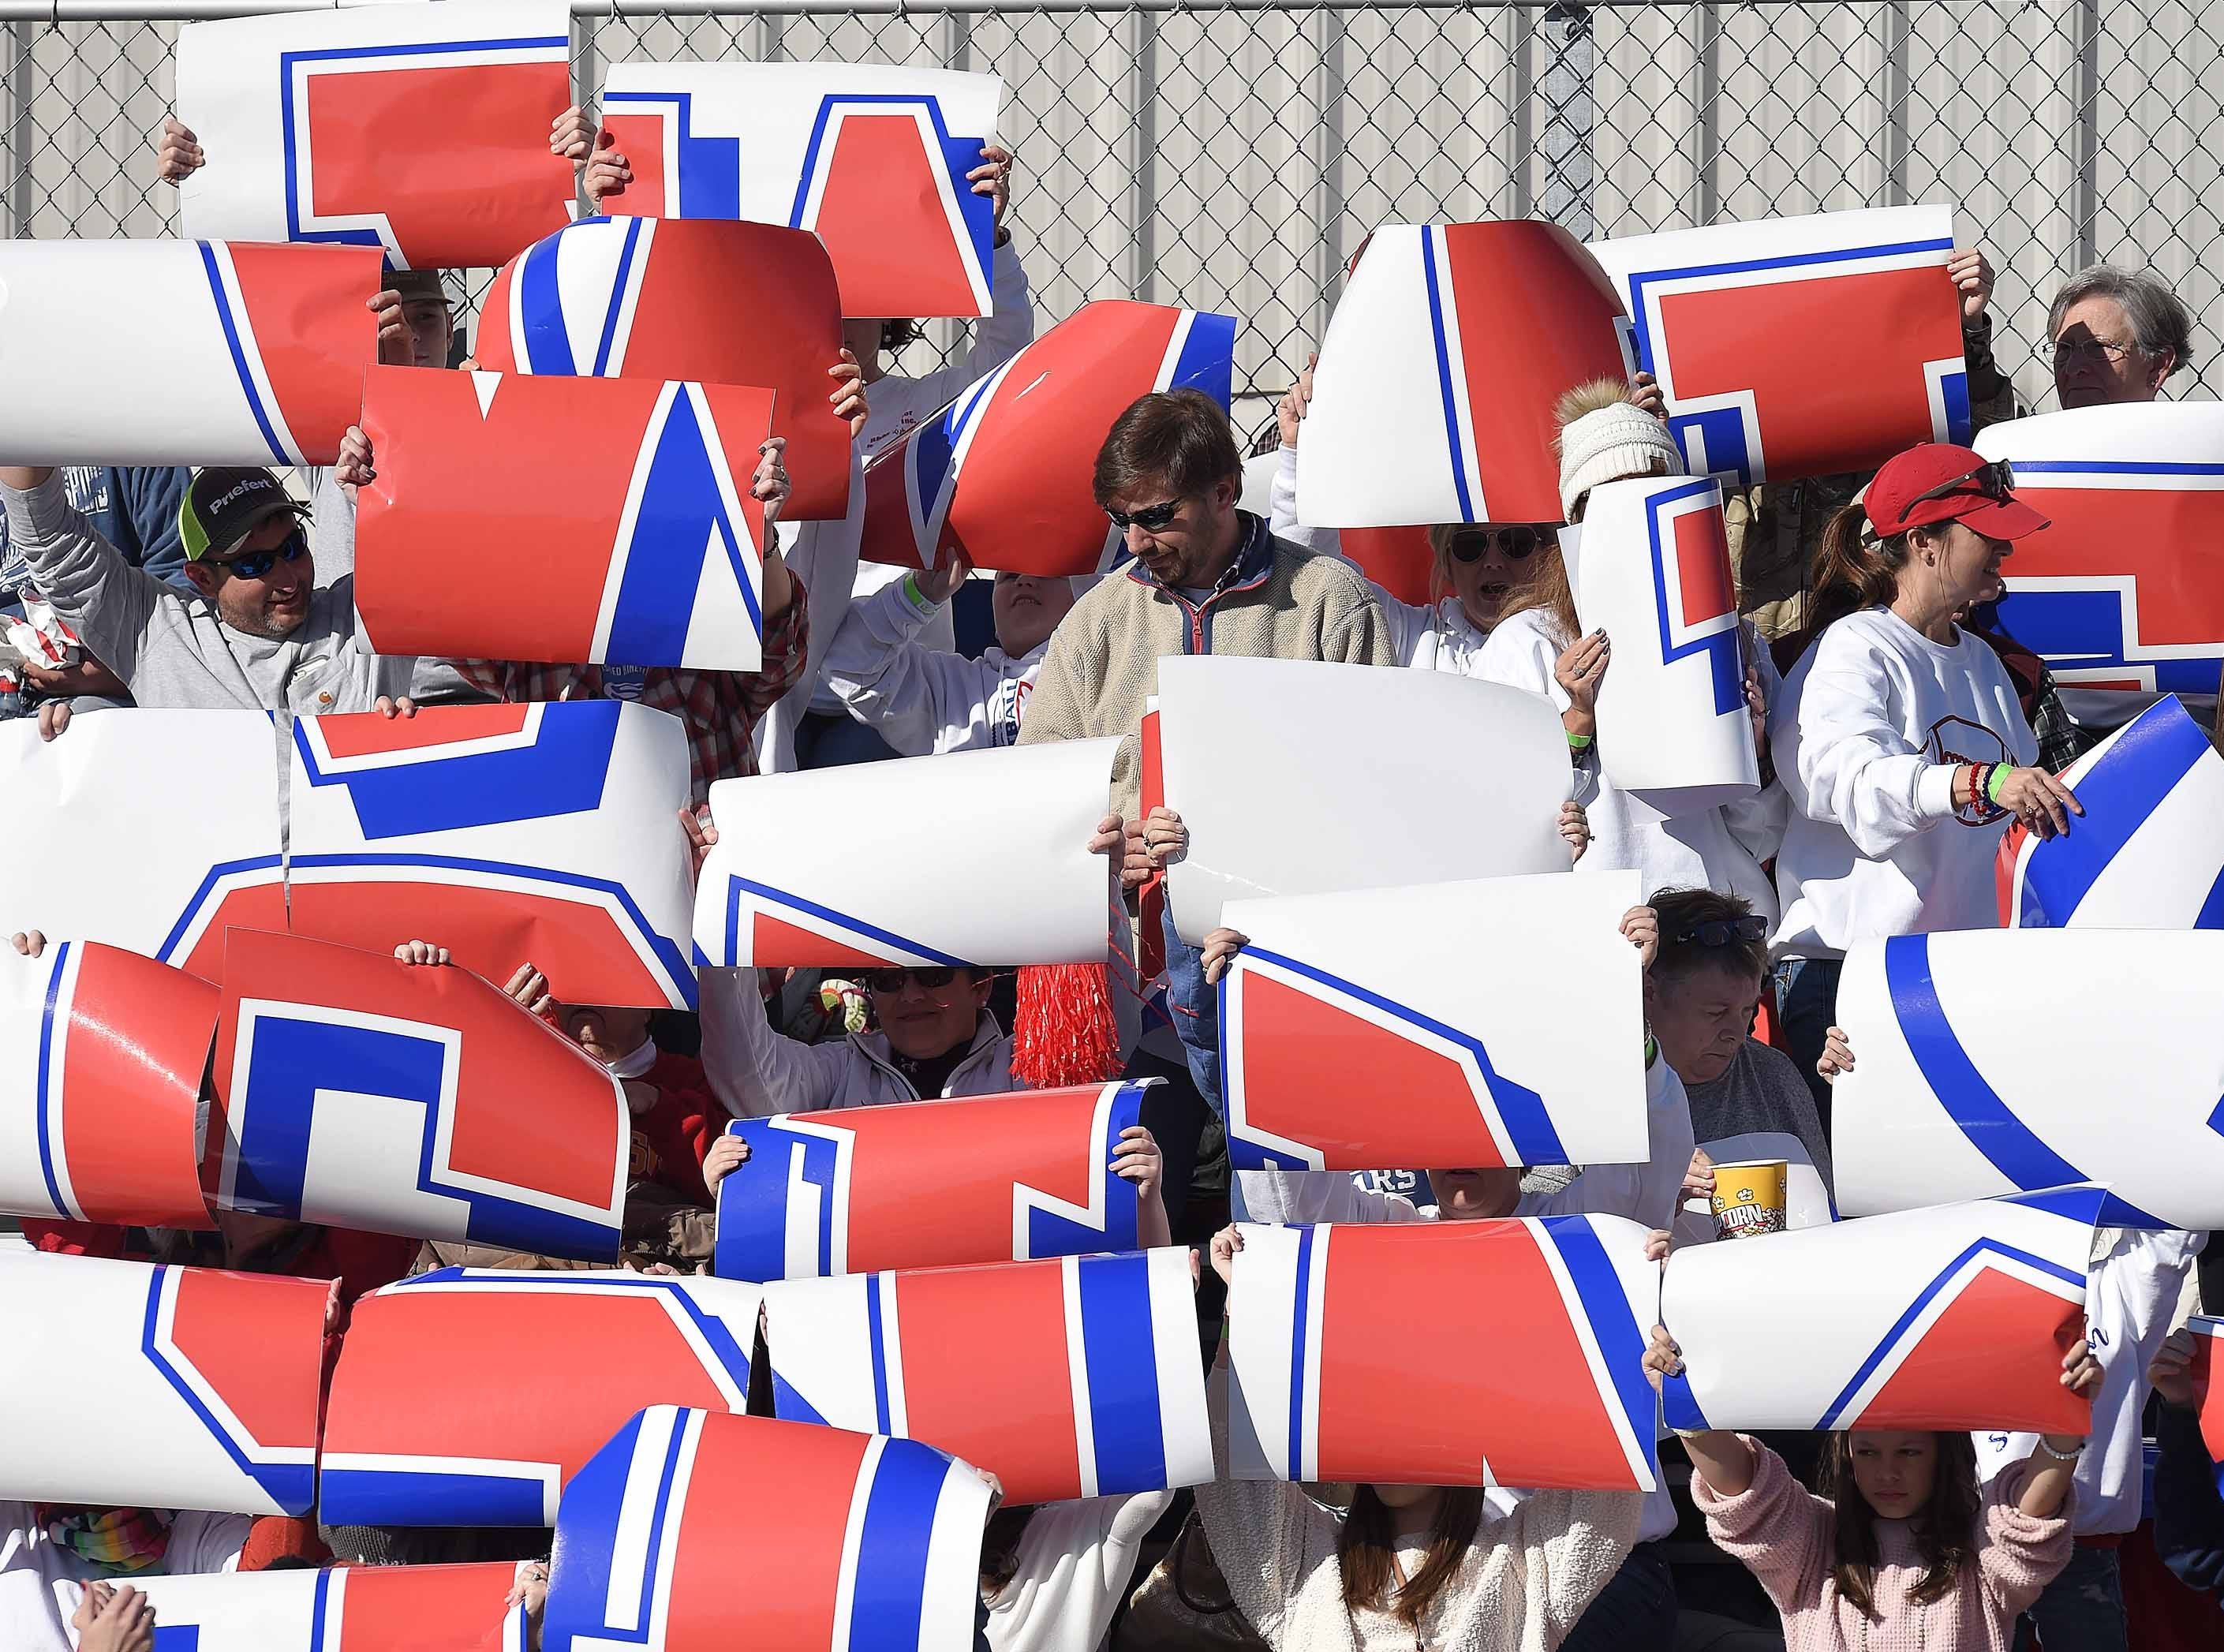 Simpson Academy fans try to build a logo in the stands on Thursday, November 15, 2018, in the MAIS Class AAAA-D2 Football Championship at Jackson Academy in Jackson, Miss.